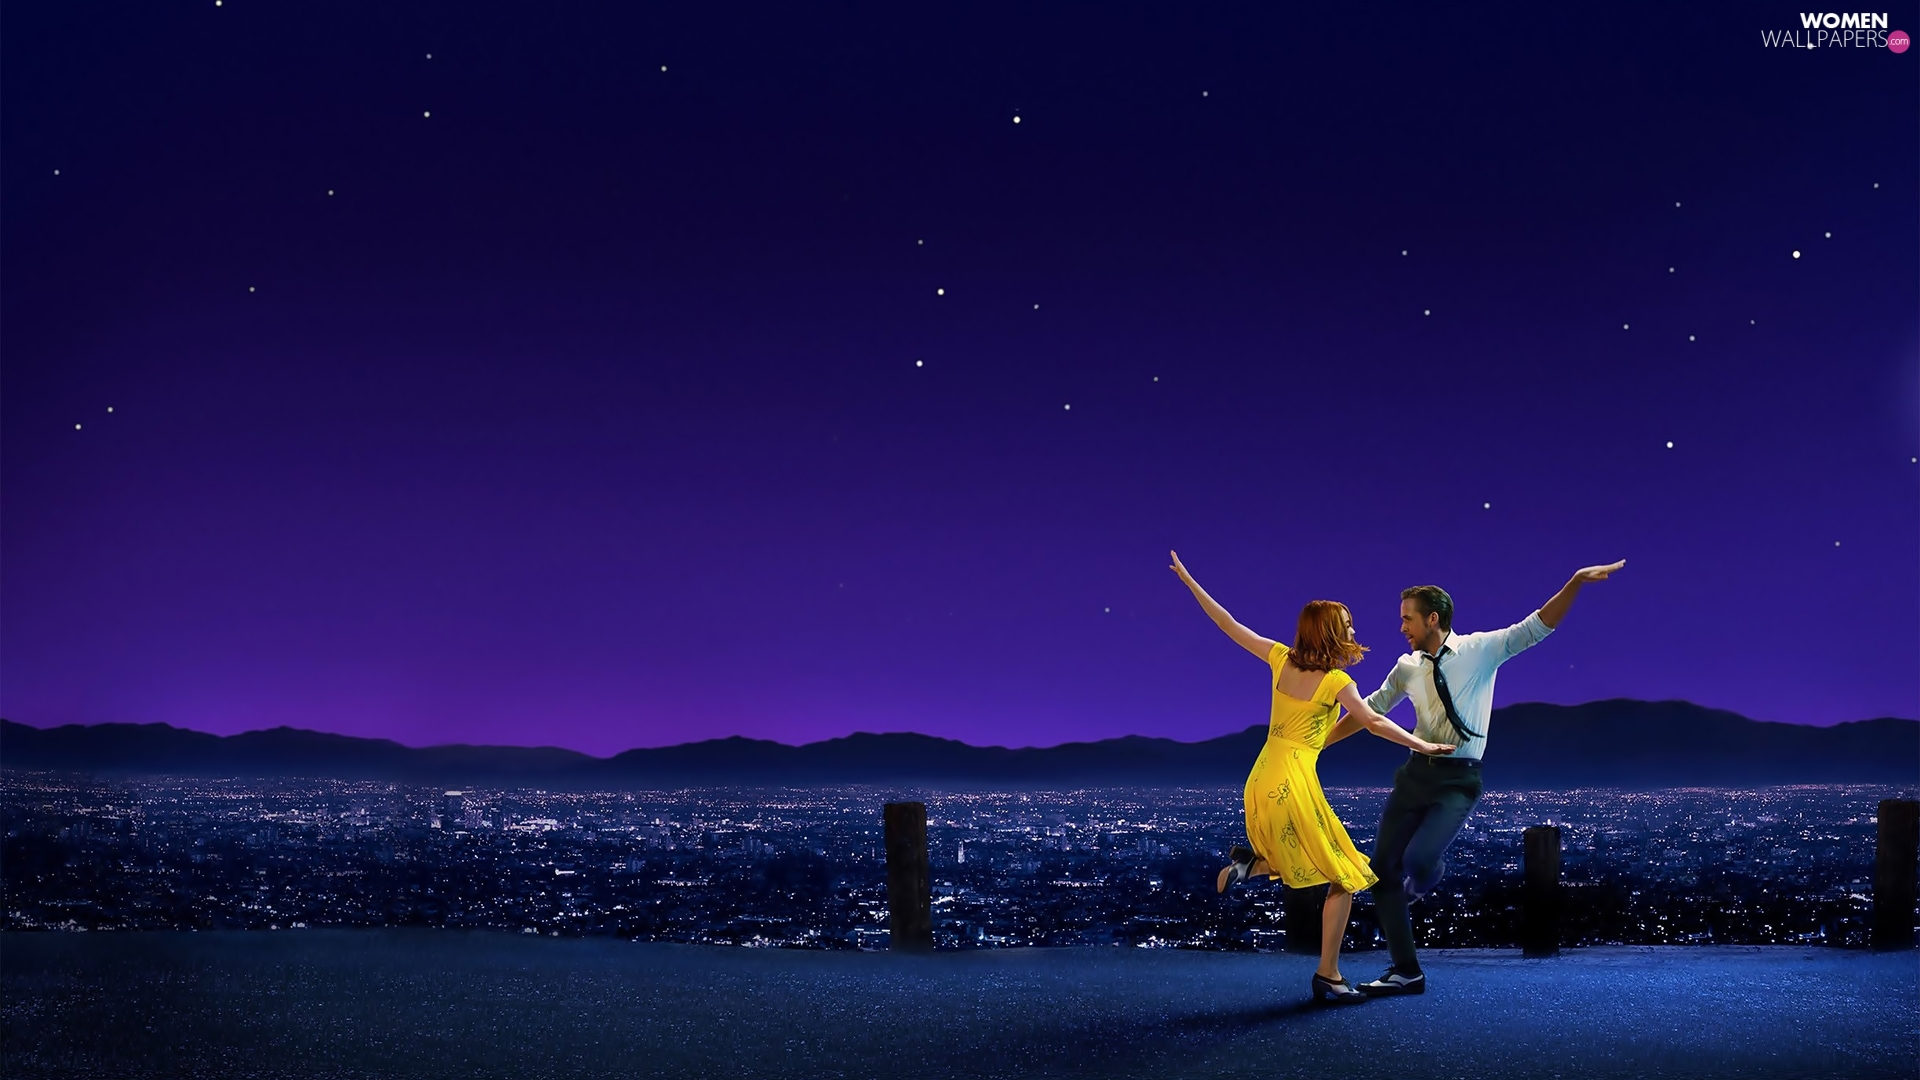 dance, Emma Stone, Ryan Gosling, movie, City at Night, La La Land